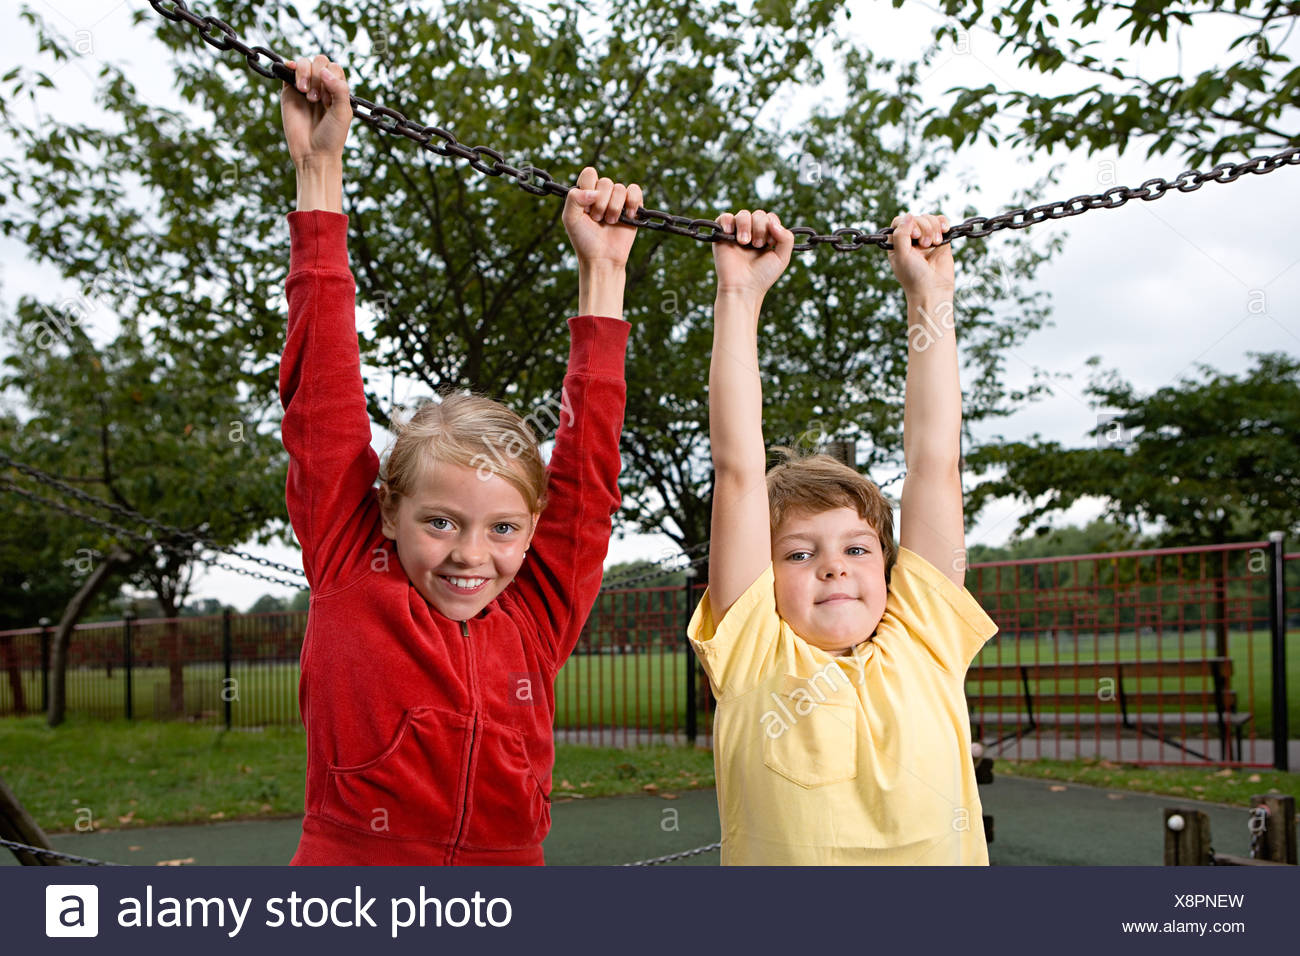 Boy and girl holding a chain - Stock Image